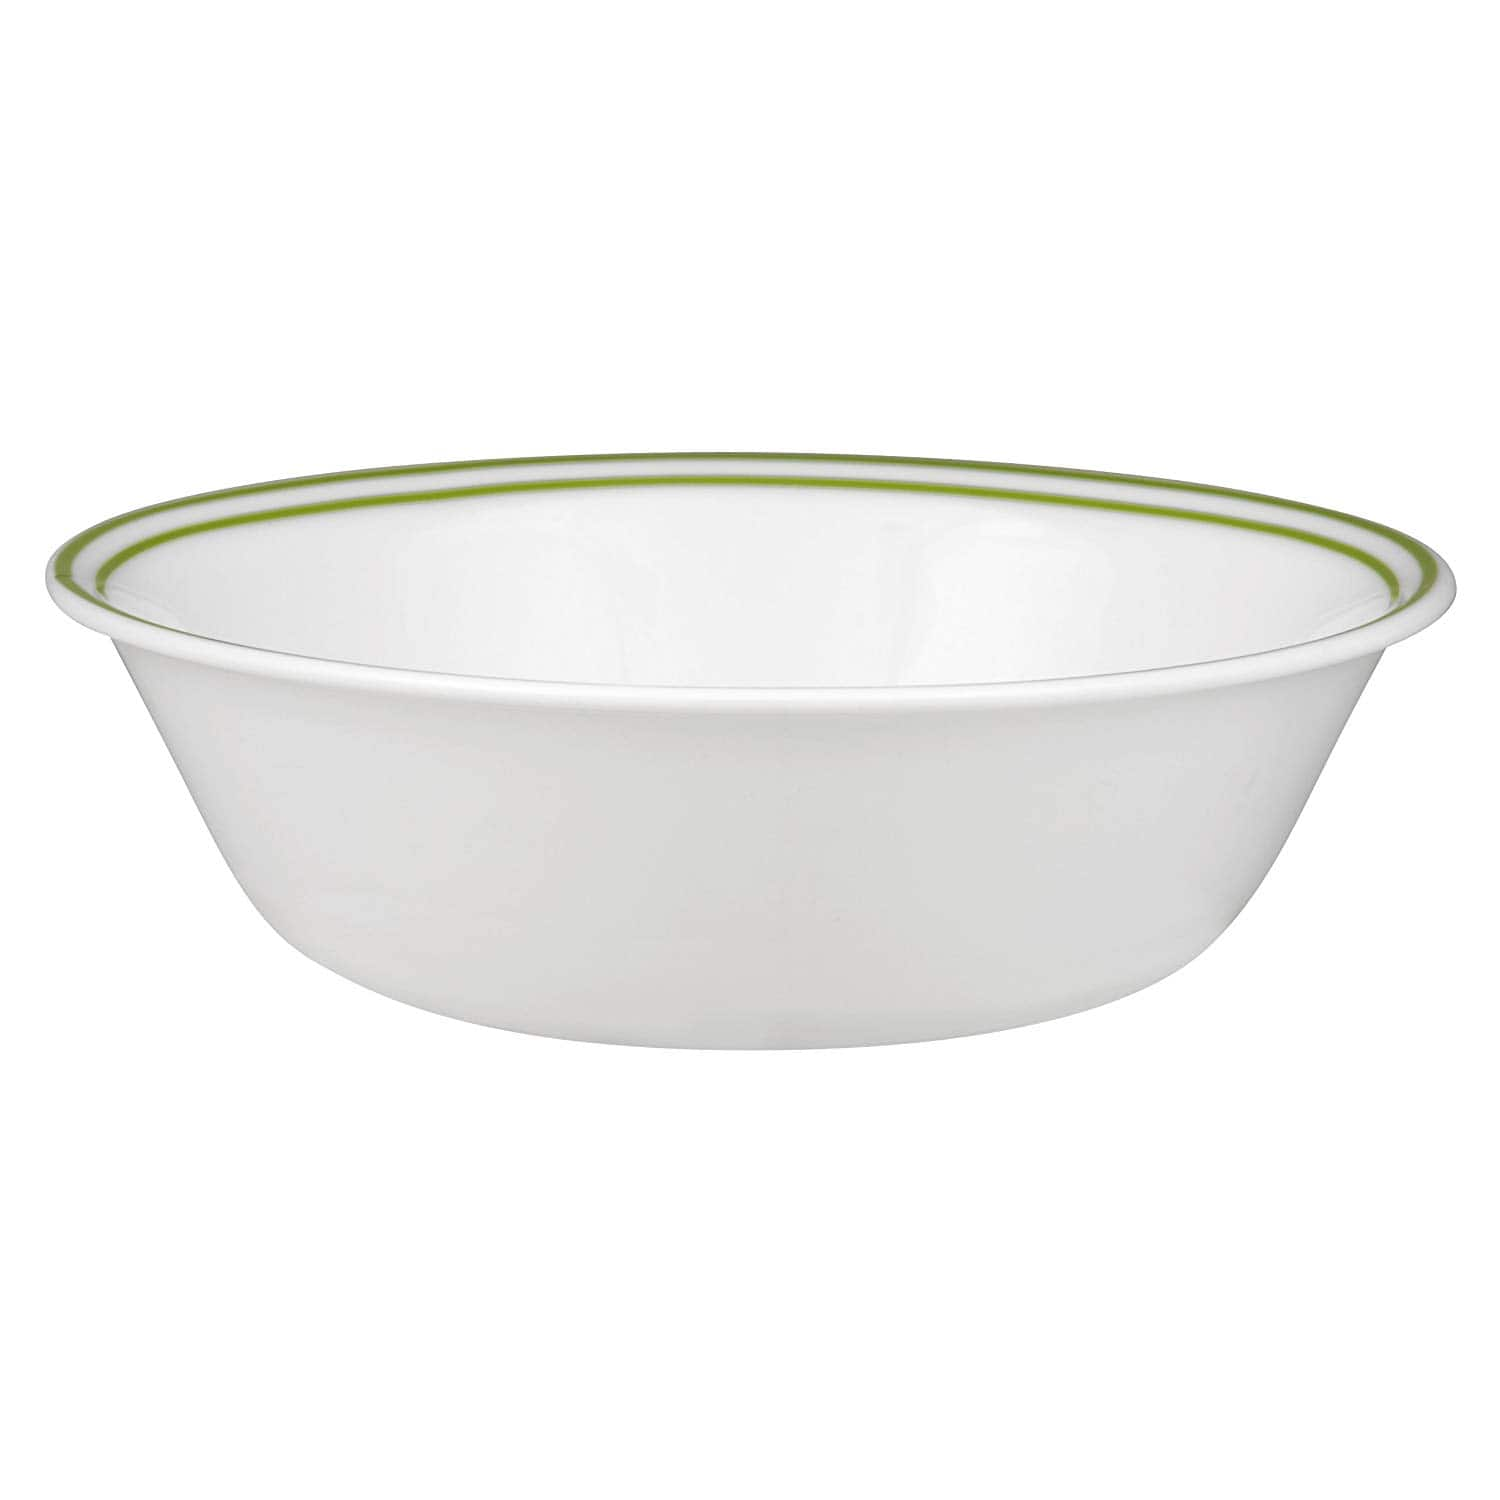 Corelle Livingware Spring Pink 18-oz Bowl, 6 pack - SLOW shipping but $5.07 @ Amazon (Prime)